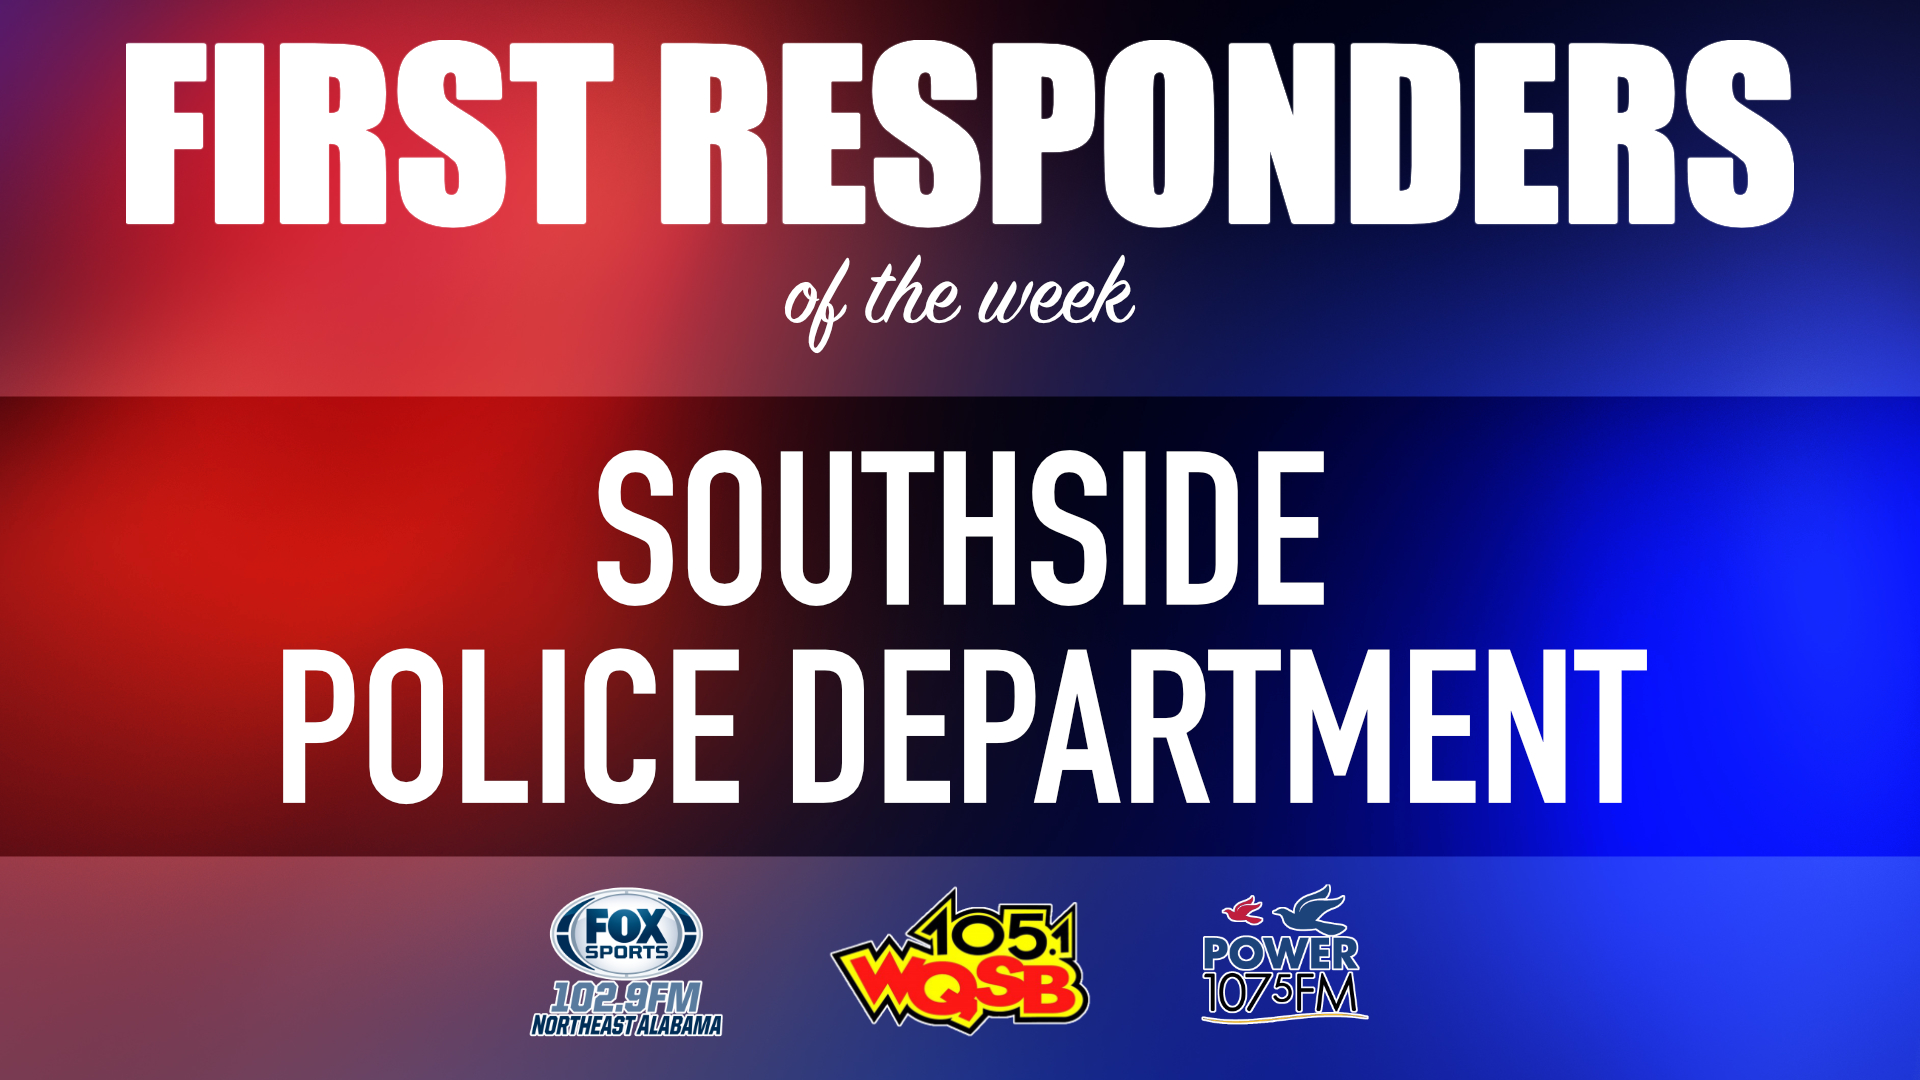 WQSB First Responders of the Week 2021 March 29, 2021